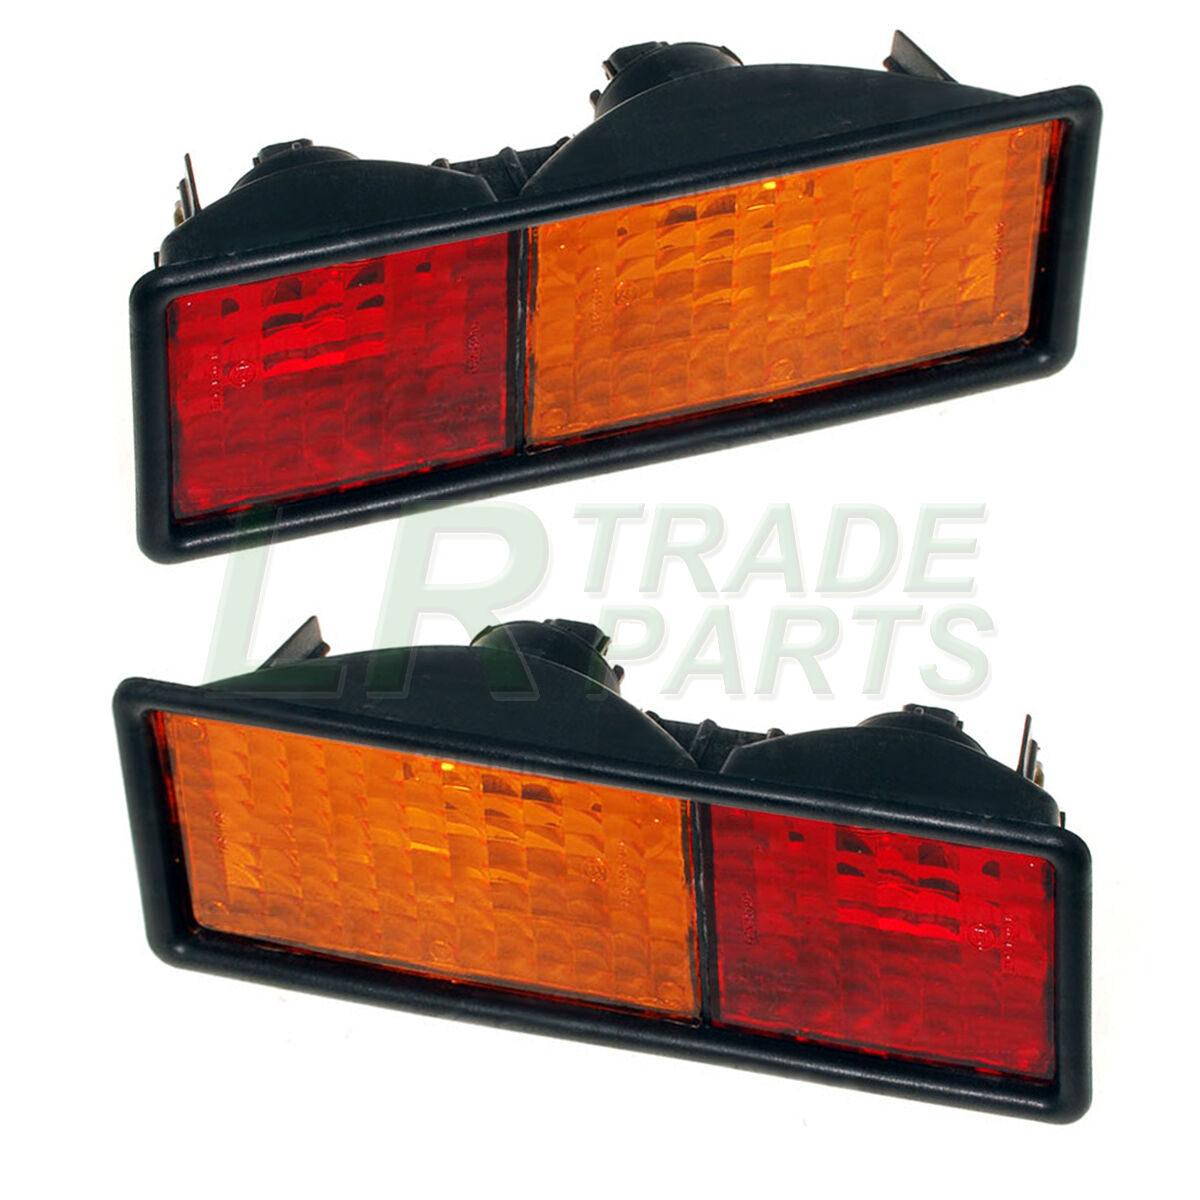 Land Rover Discovery 2 Range Rover P38 Rear Lhs N S: LAND ROVER DISCOVERY 1 300TDI NEW REAR BUMPER LIGHTS LAMPS